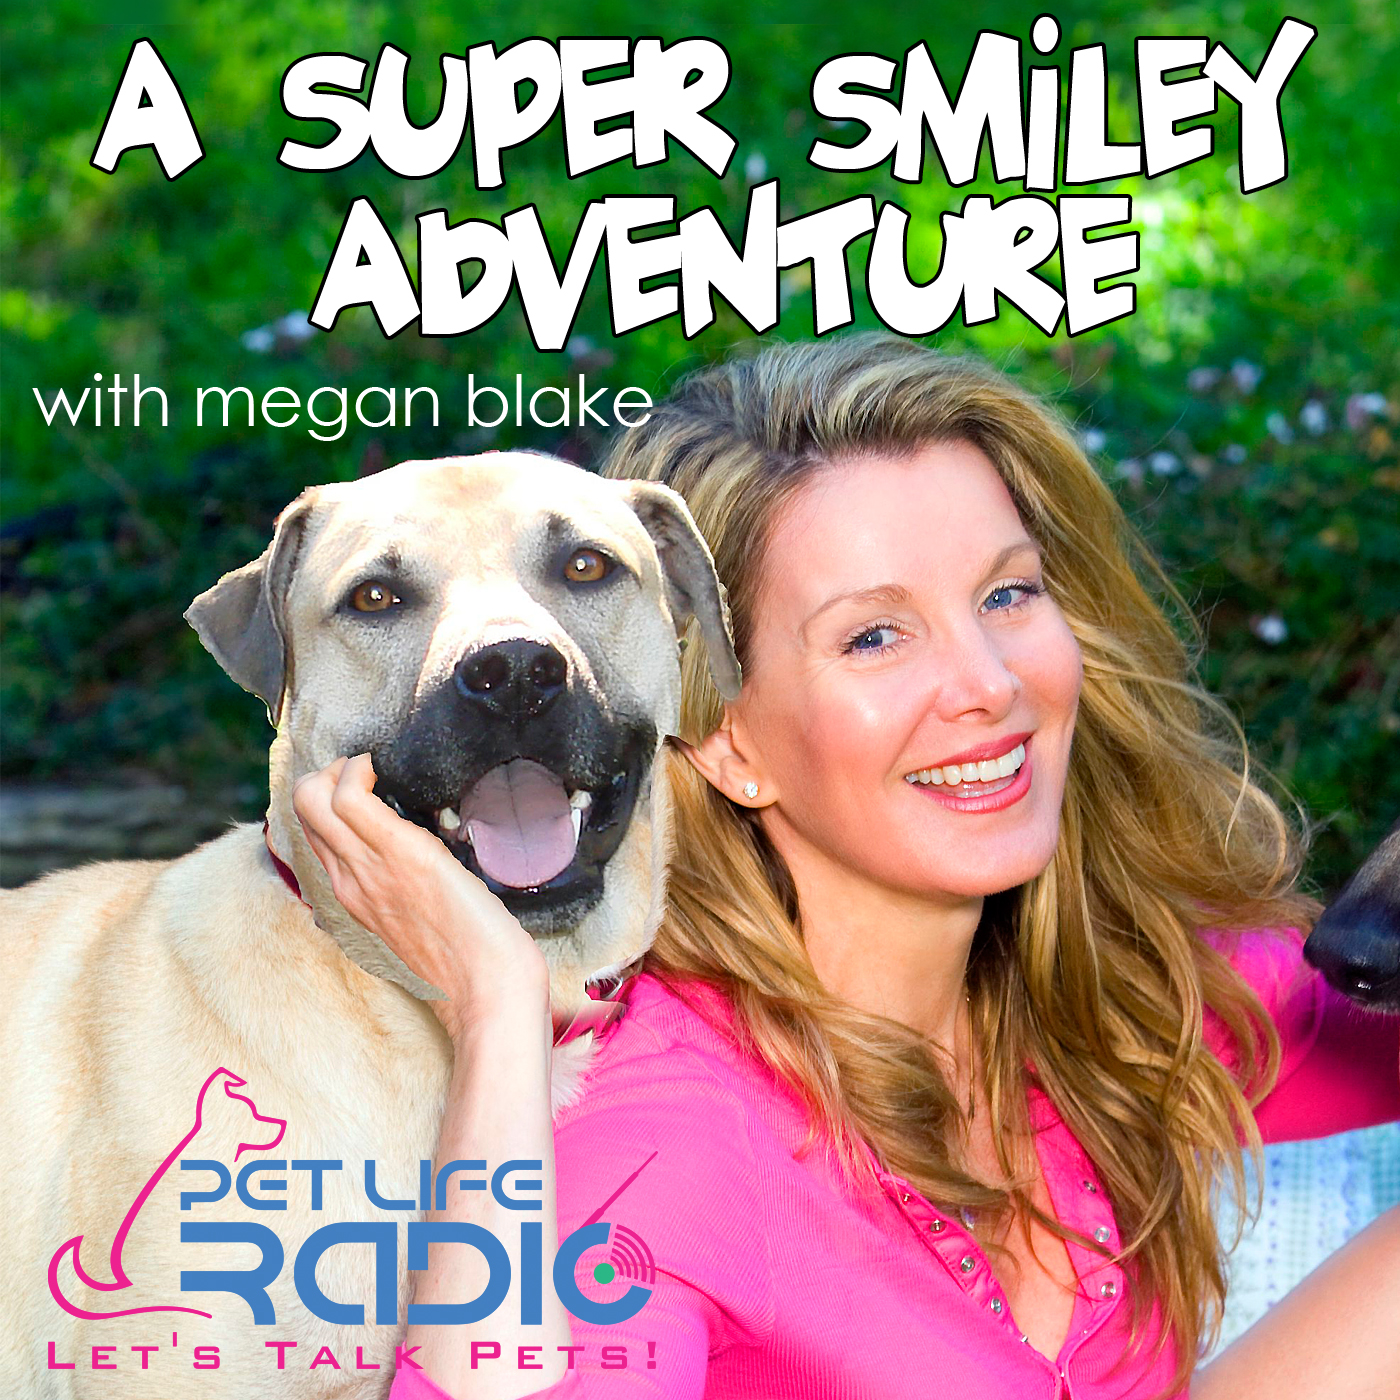 A Super Smiley Adventure with Megan Blake - Pets & Animals on Pet Life Radio (PetLifeRadio.com)